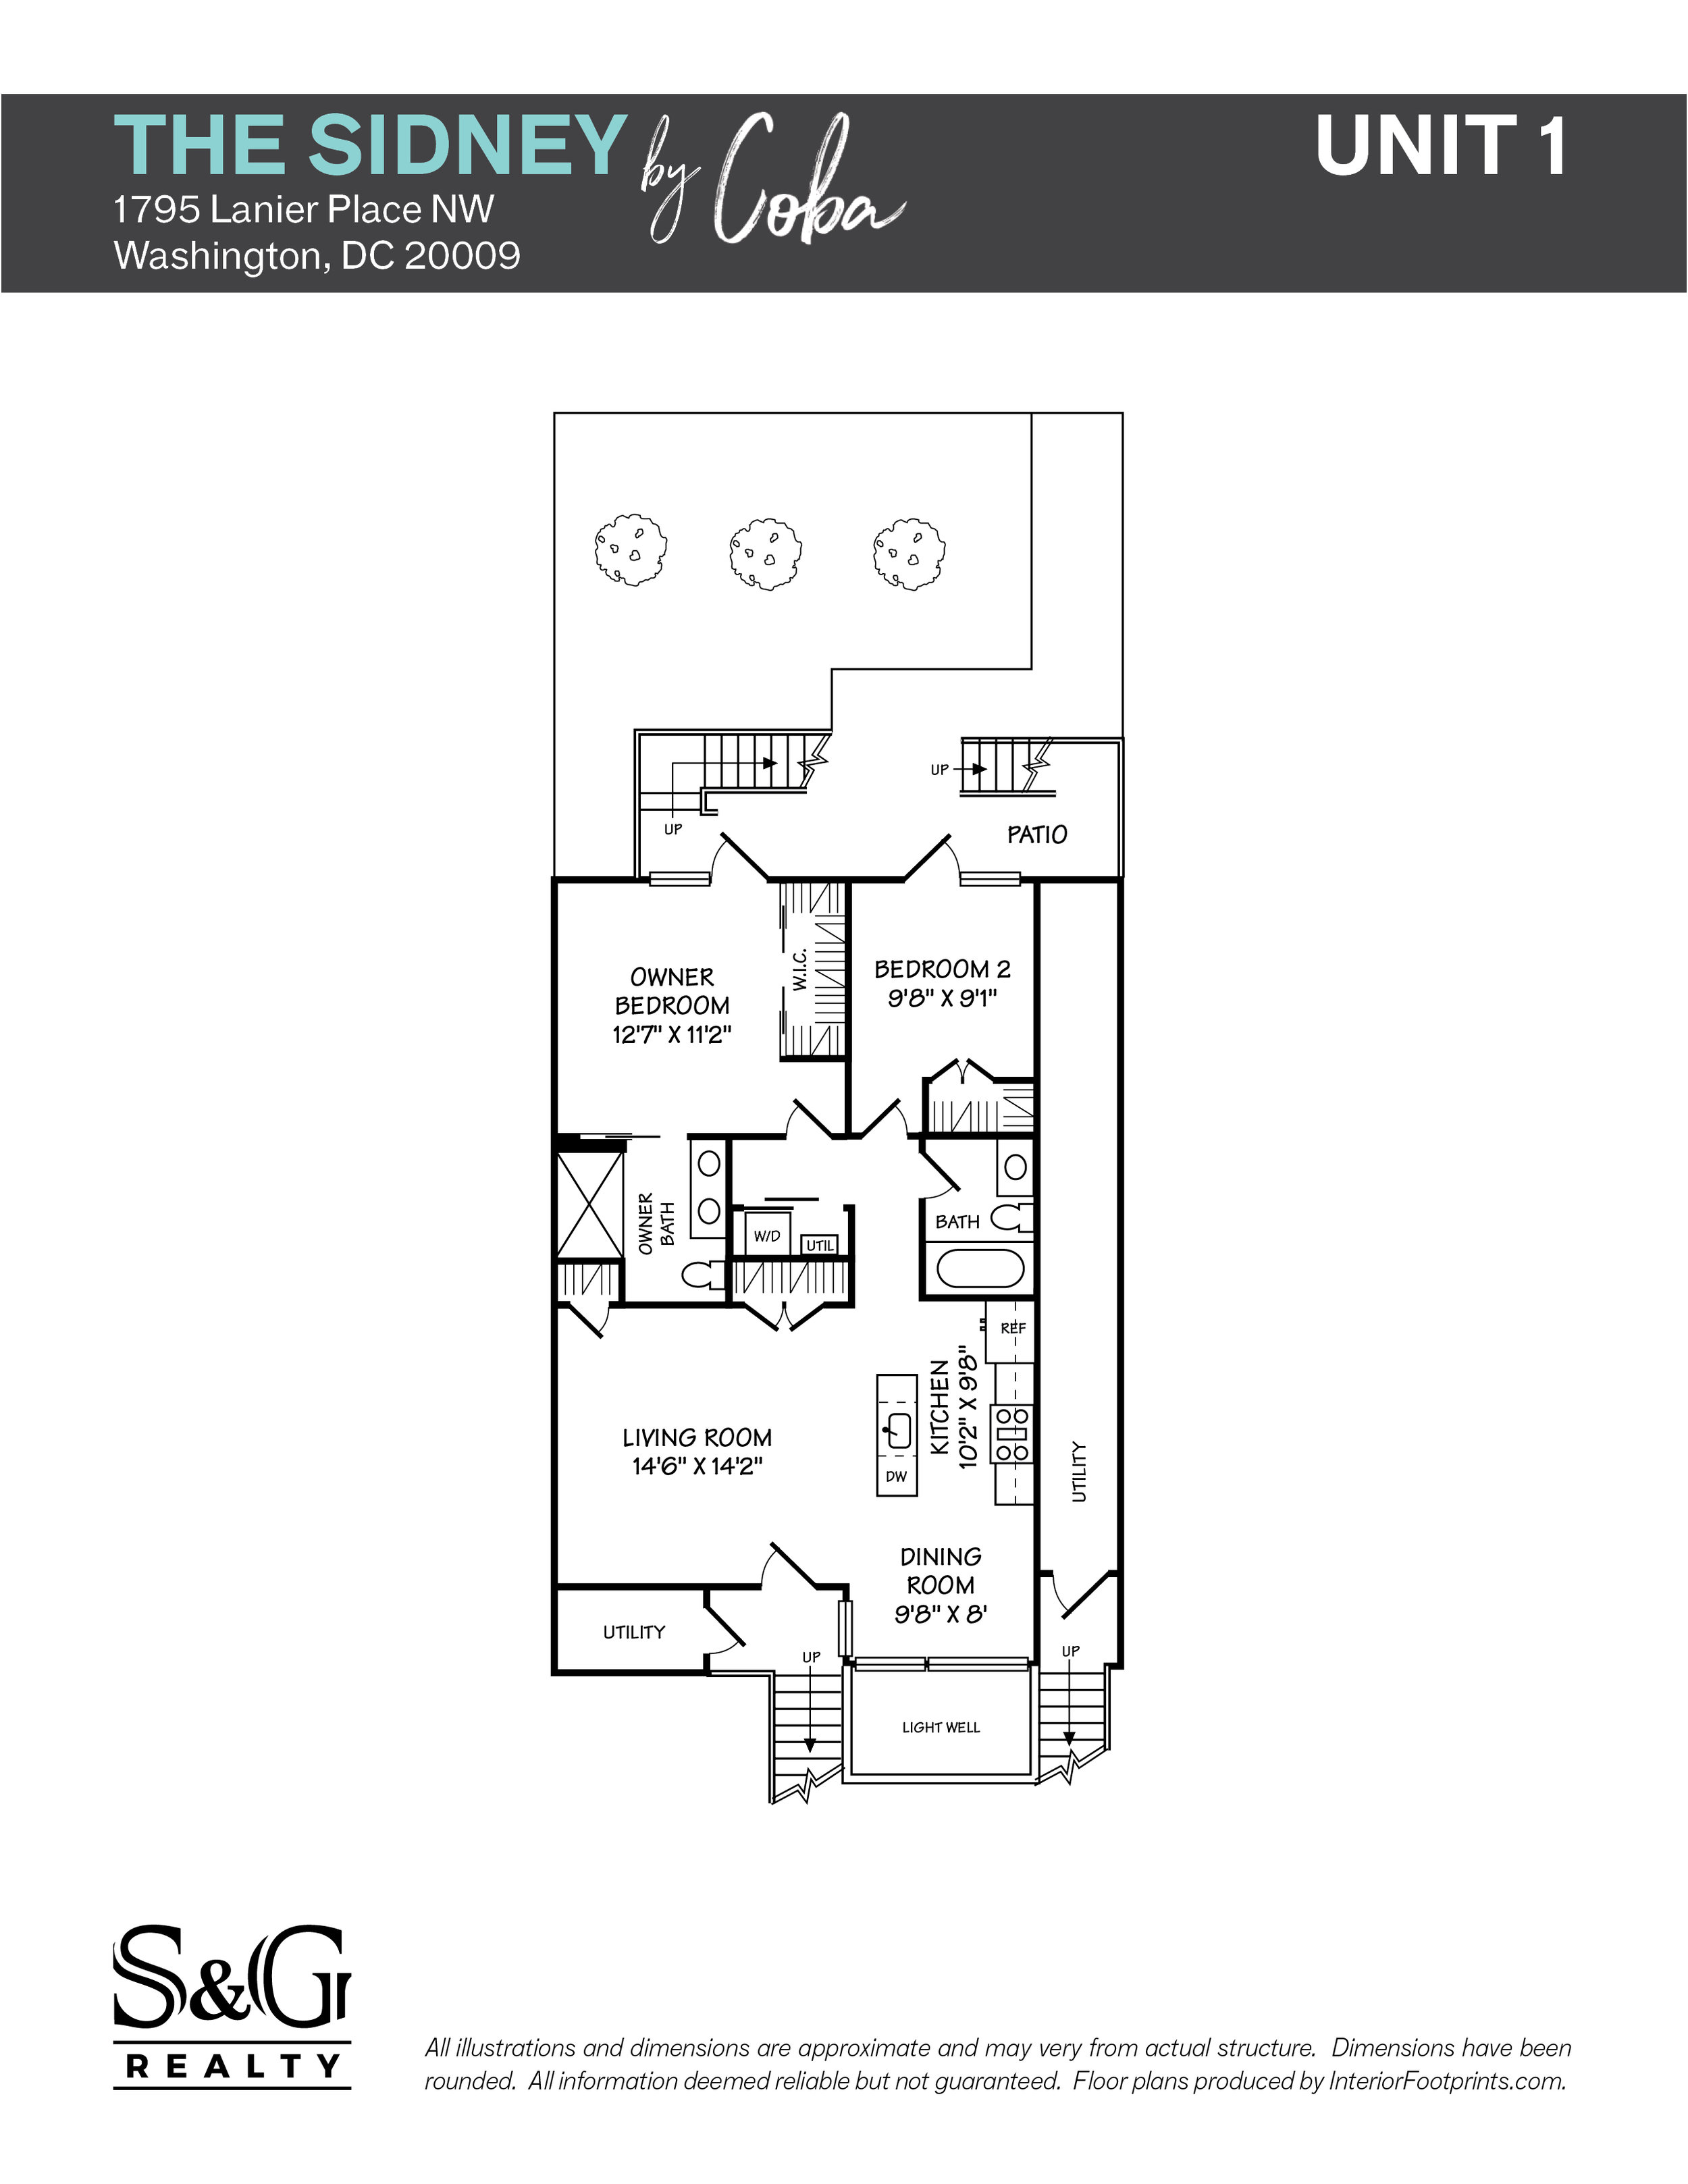 1795 Lanier Pl NW - Floor Plans - Unit 1.jpg